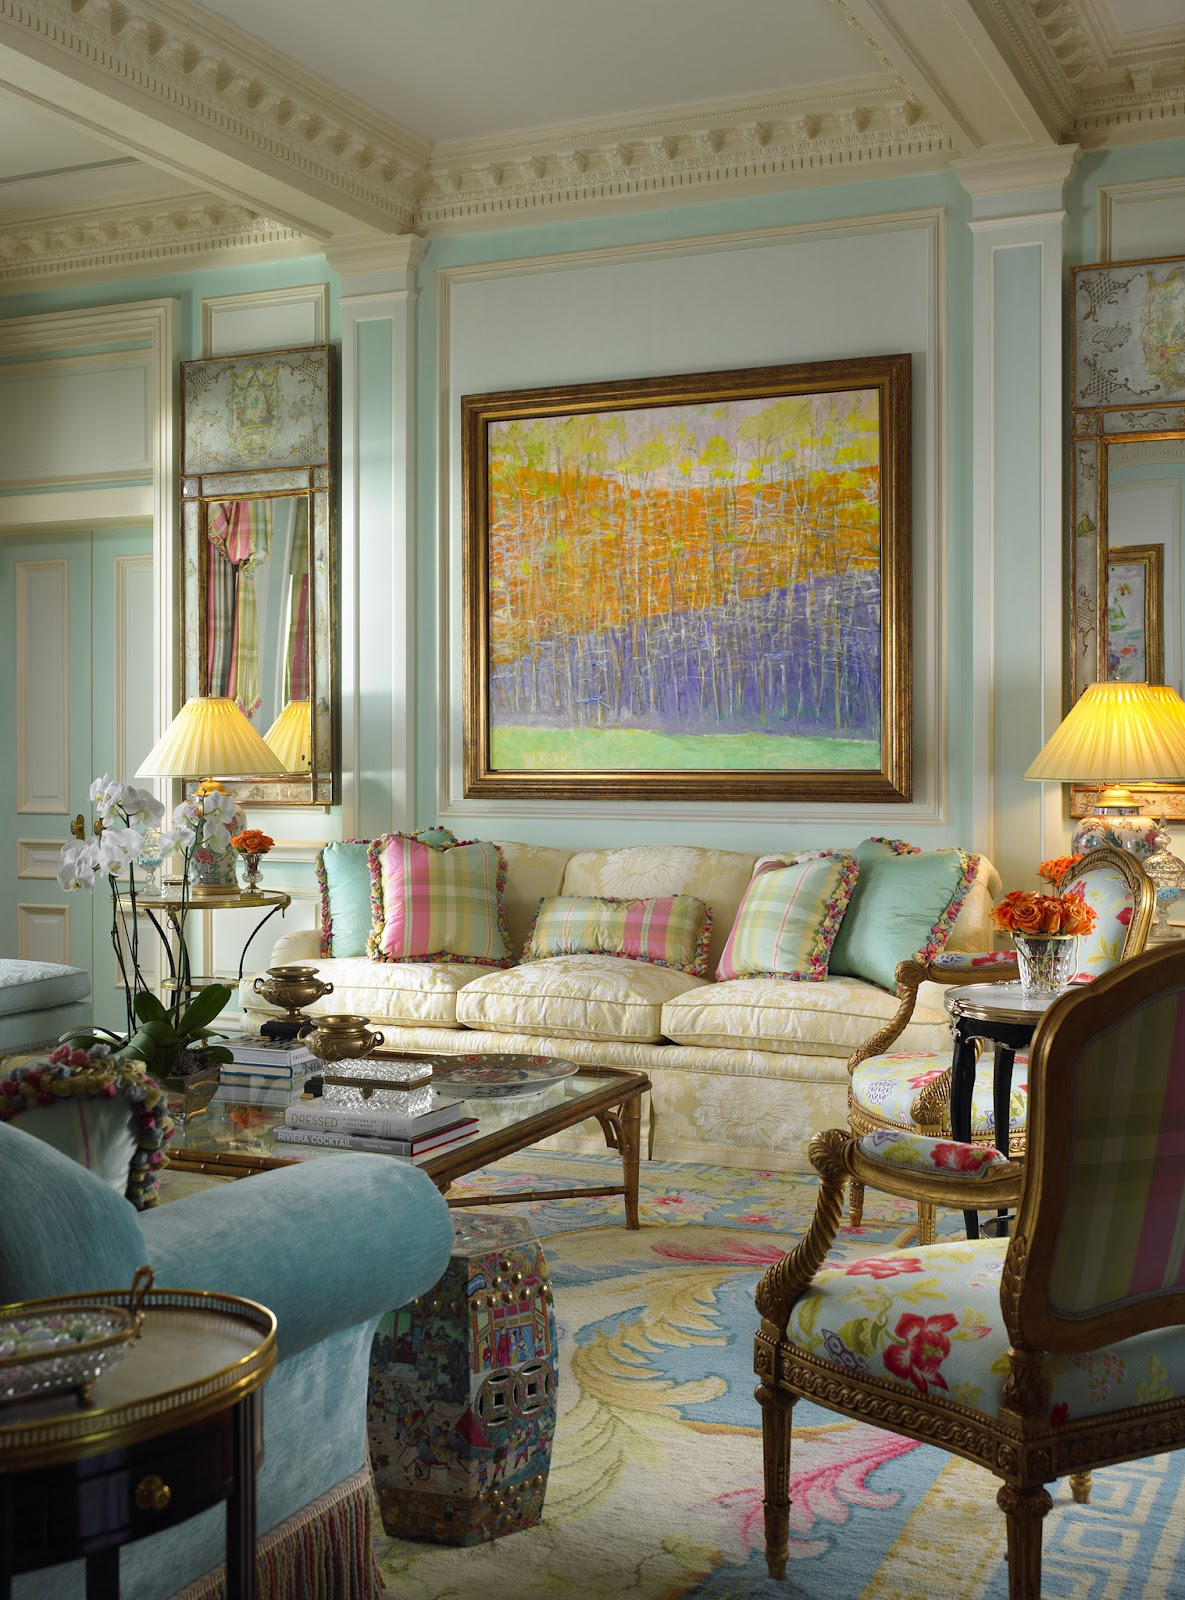 Incroyable Palm Beach Chic With Scott Snyder, Inc.